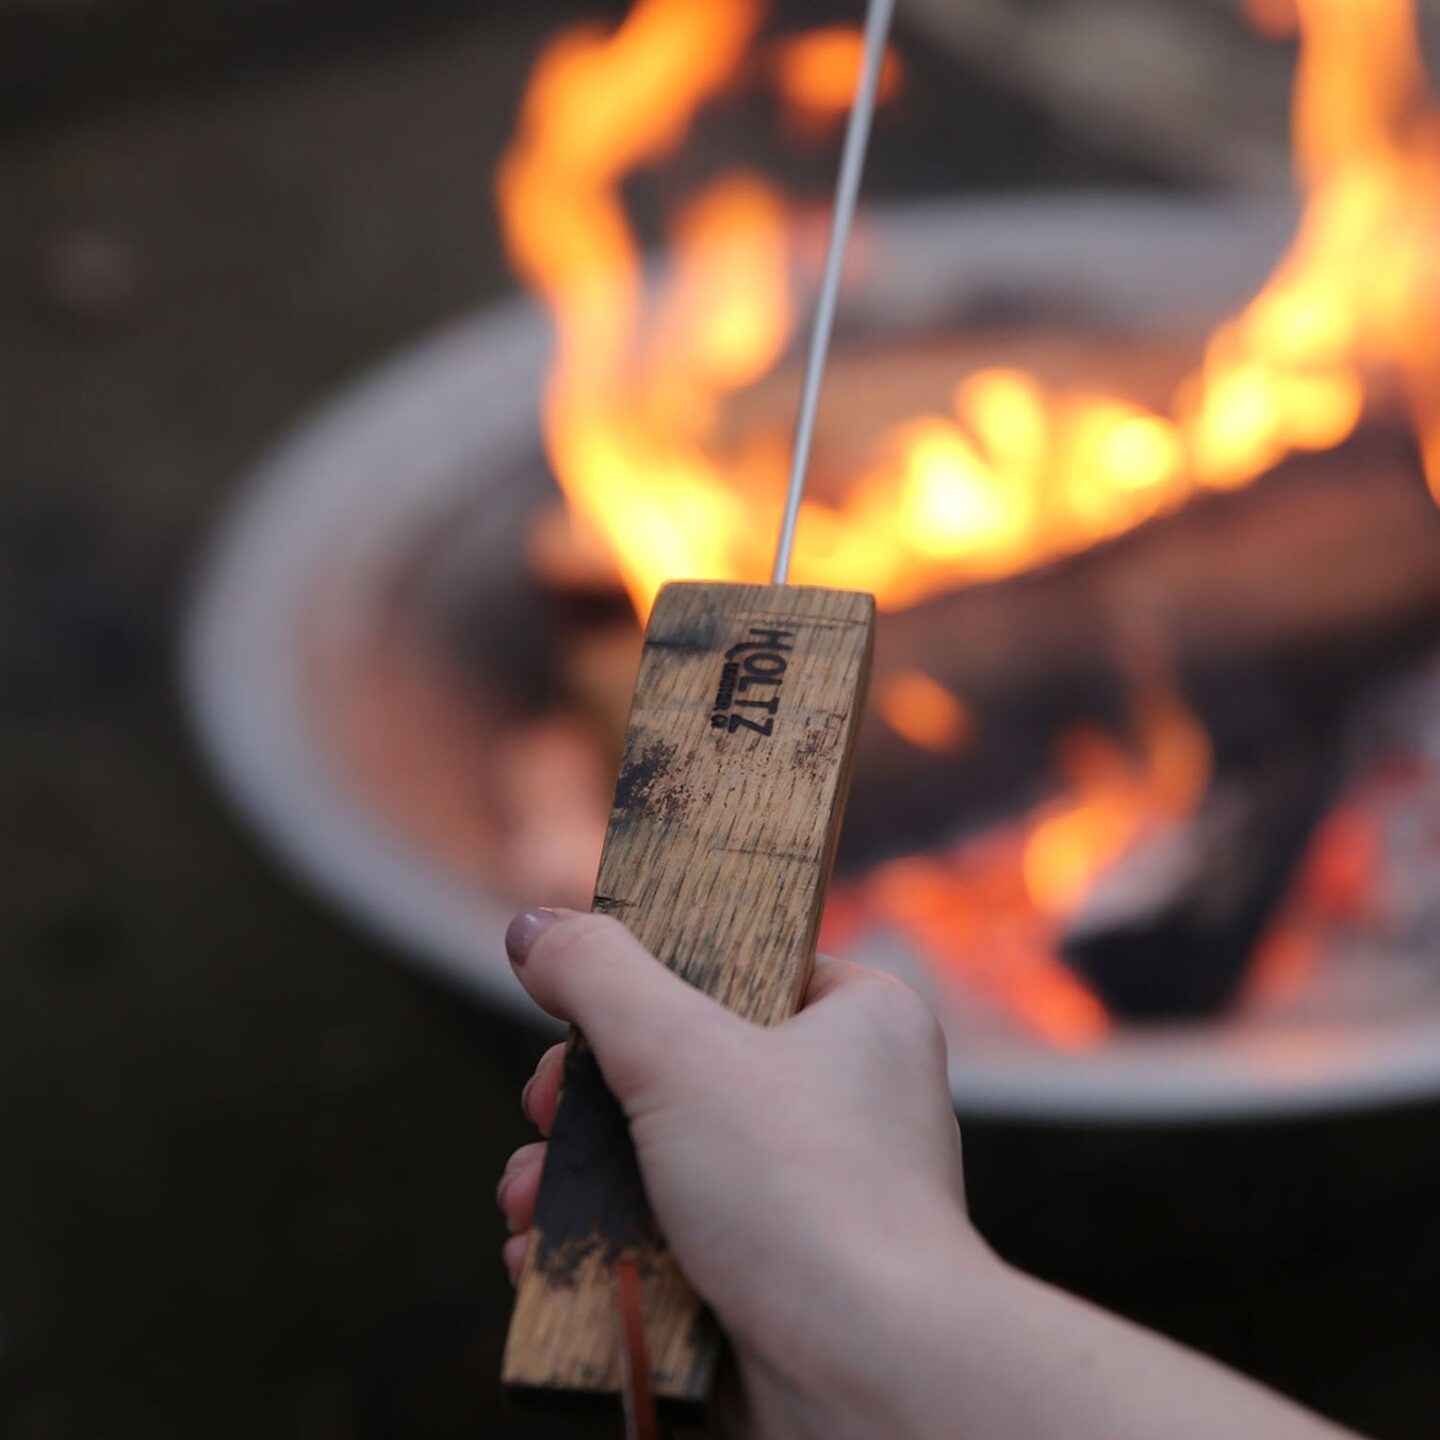 Custom bonfire s'mores sticks for practical house warming gift suggestions.